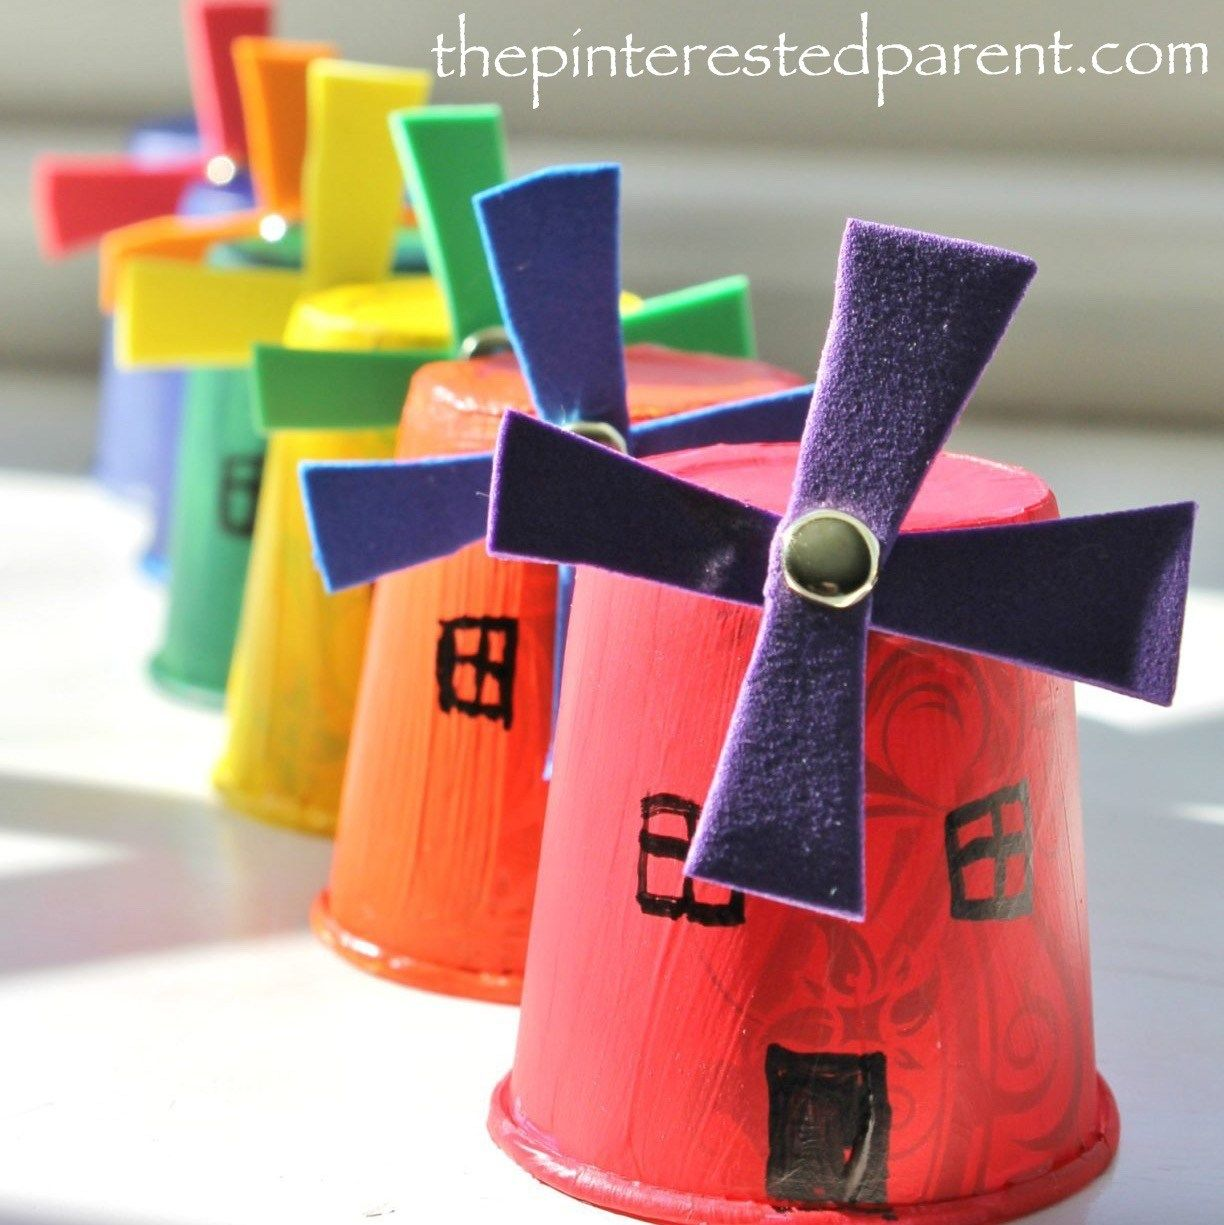 Dixie Cup Windmills – The Pinterested Parent